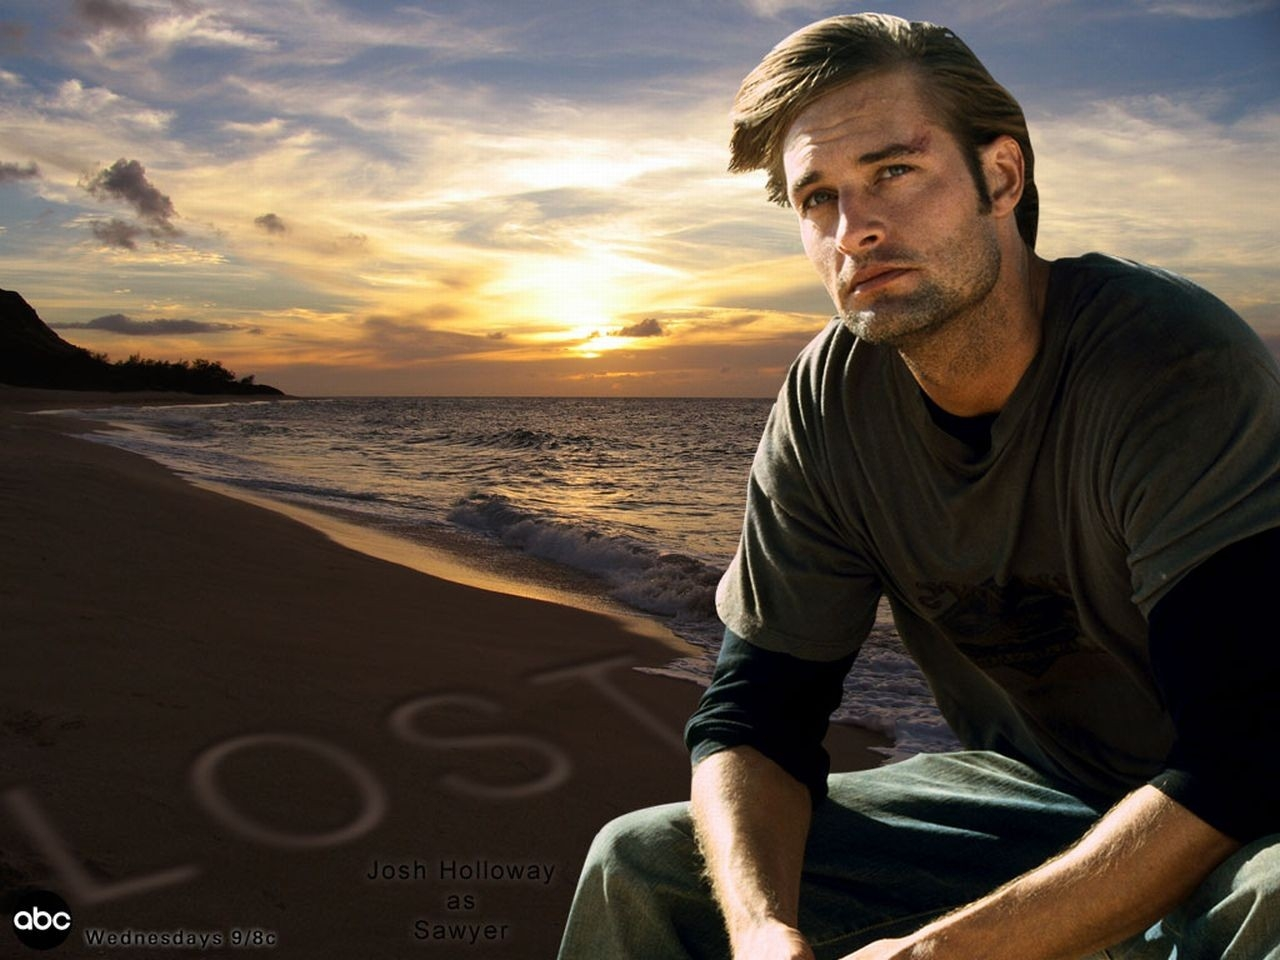 Wallpaper della serie Lost con Josh Holloway